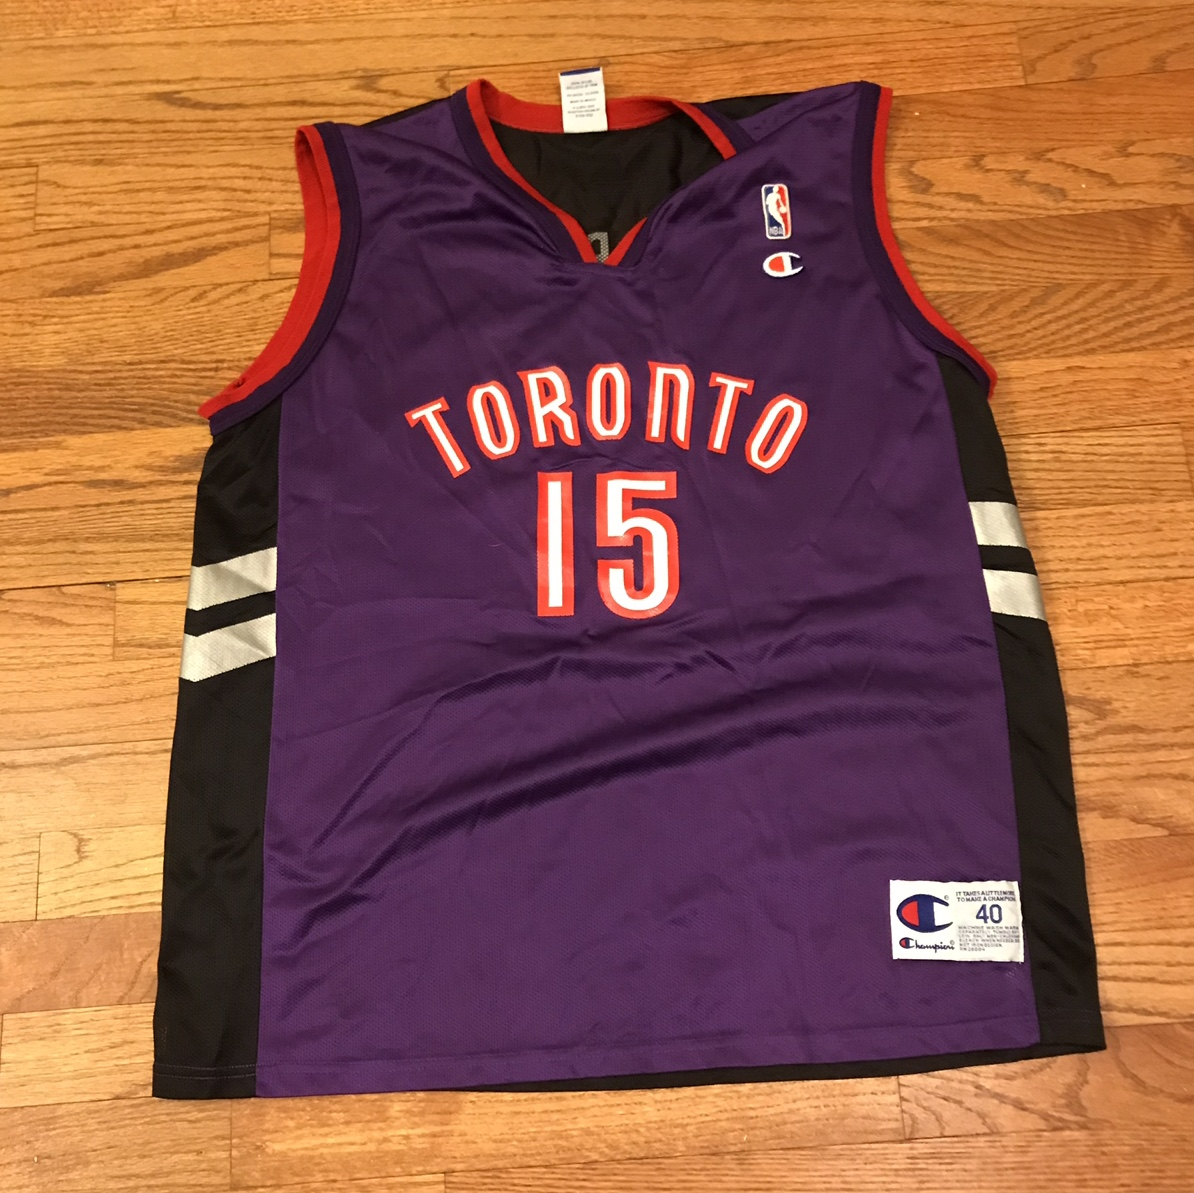 sports shoes 1e7cb 927ab Vintage raptors Vince Carter jersey - Depop